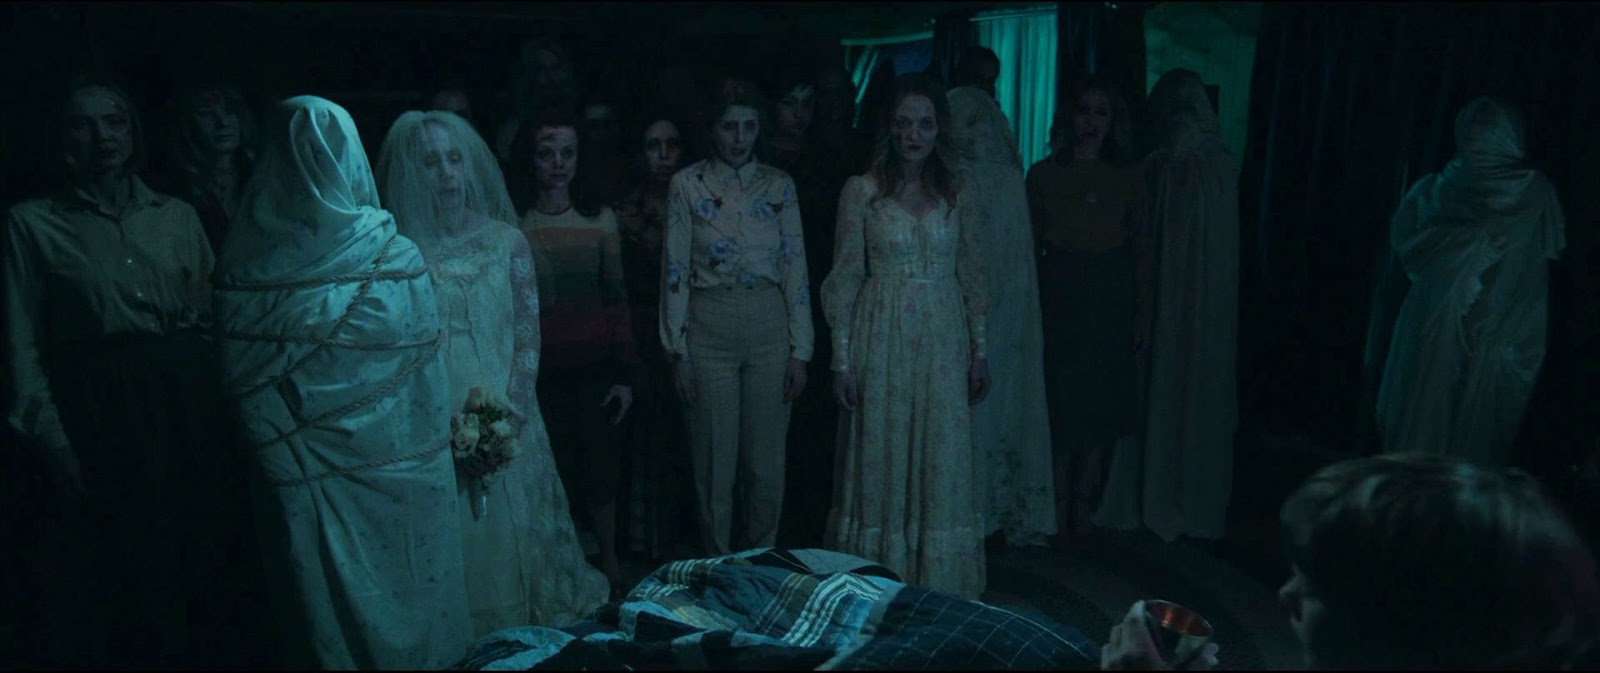 Insidious Chapter 2 (2013) S3 s Insidious Chapter 2 (2013)